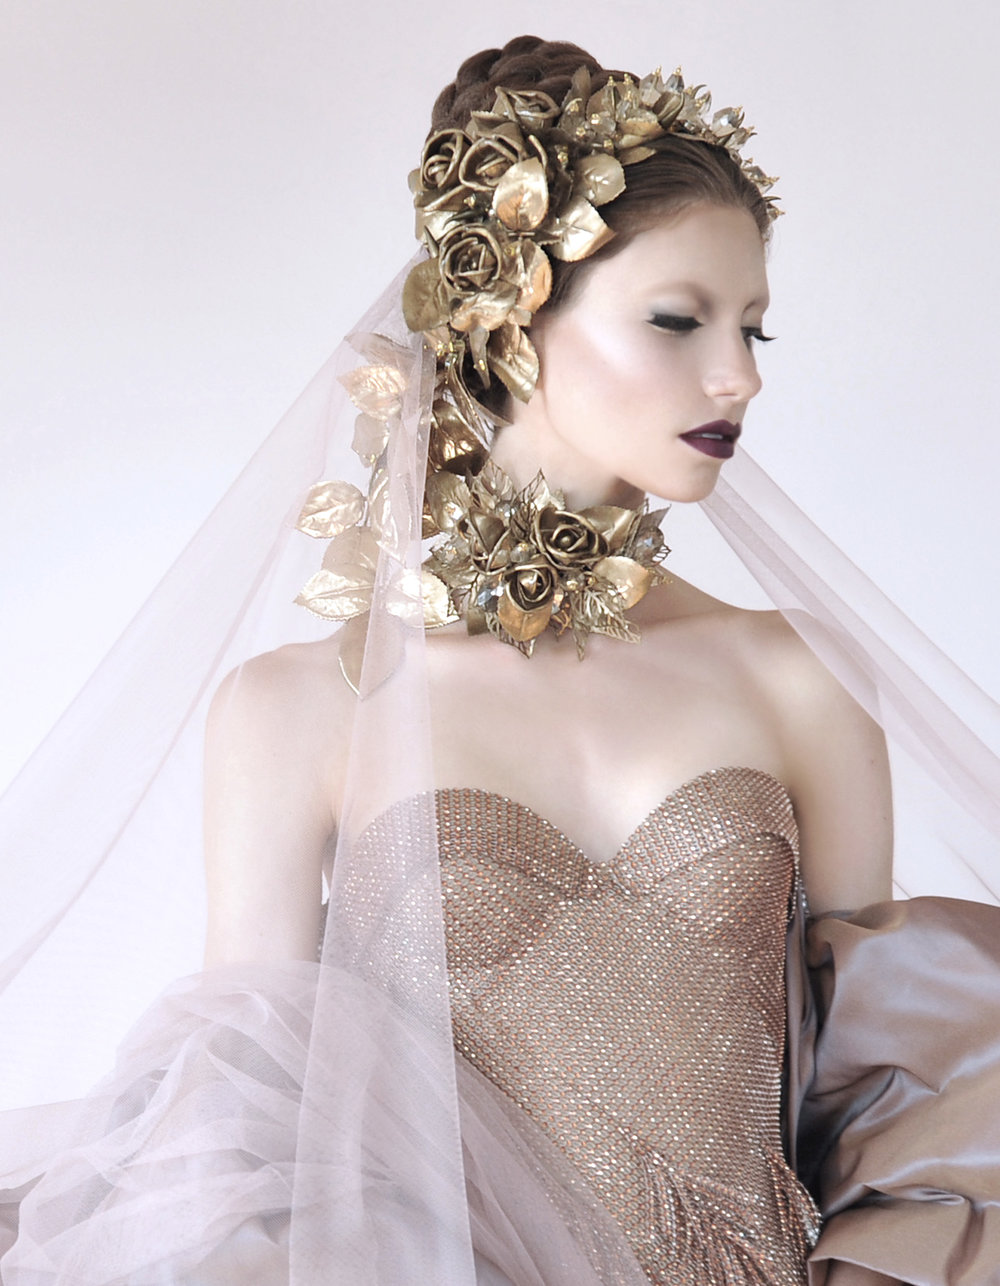 Bridal fashion.  Hair design by Betha HairCraft. Jewelry design by House of Cach. Makeup by Holly Dalton. Wardrobe by Jonathan Joseph Peters. Photo by Daniel Gagnon Photography